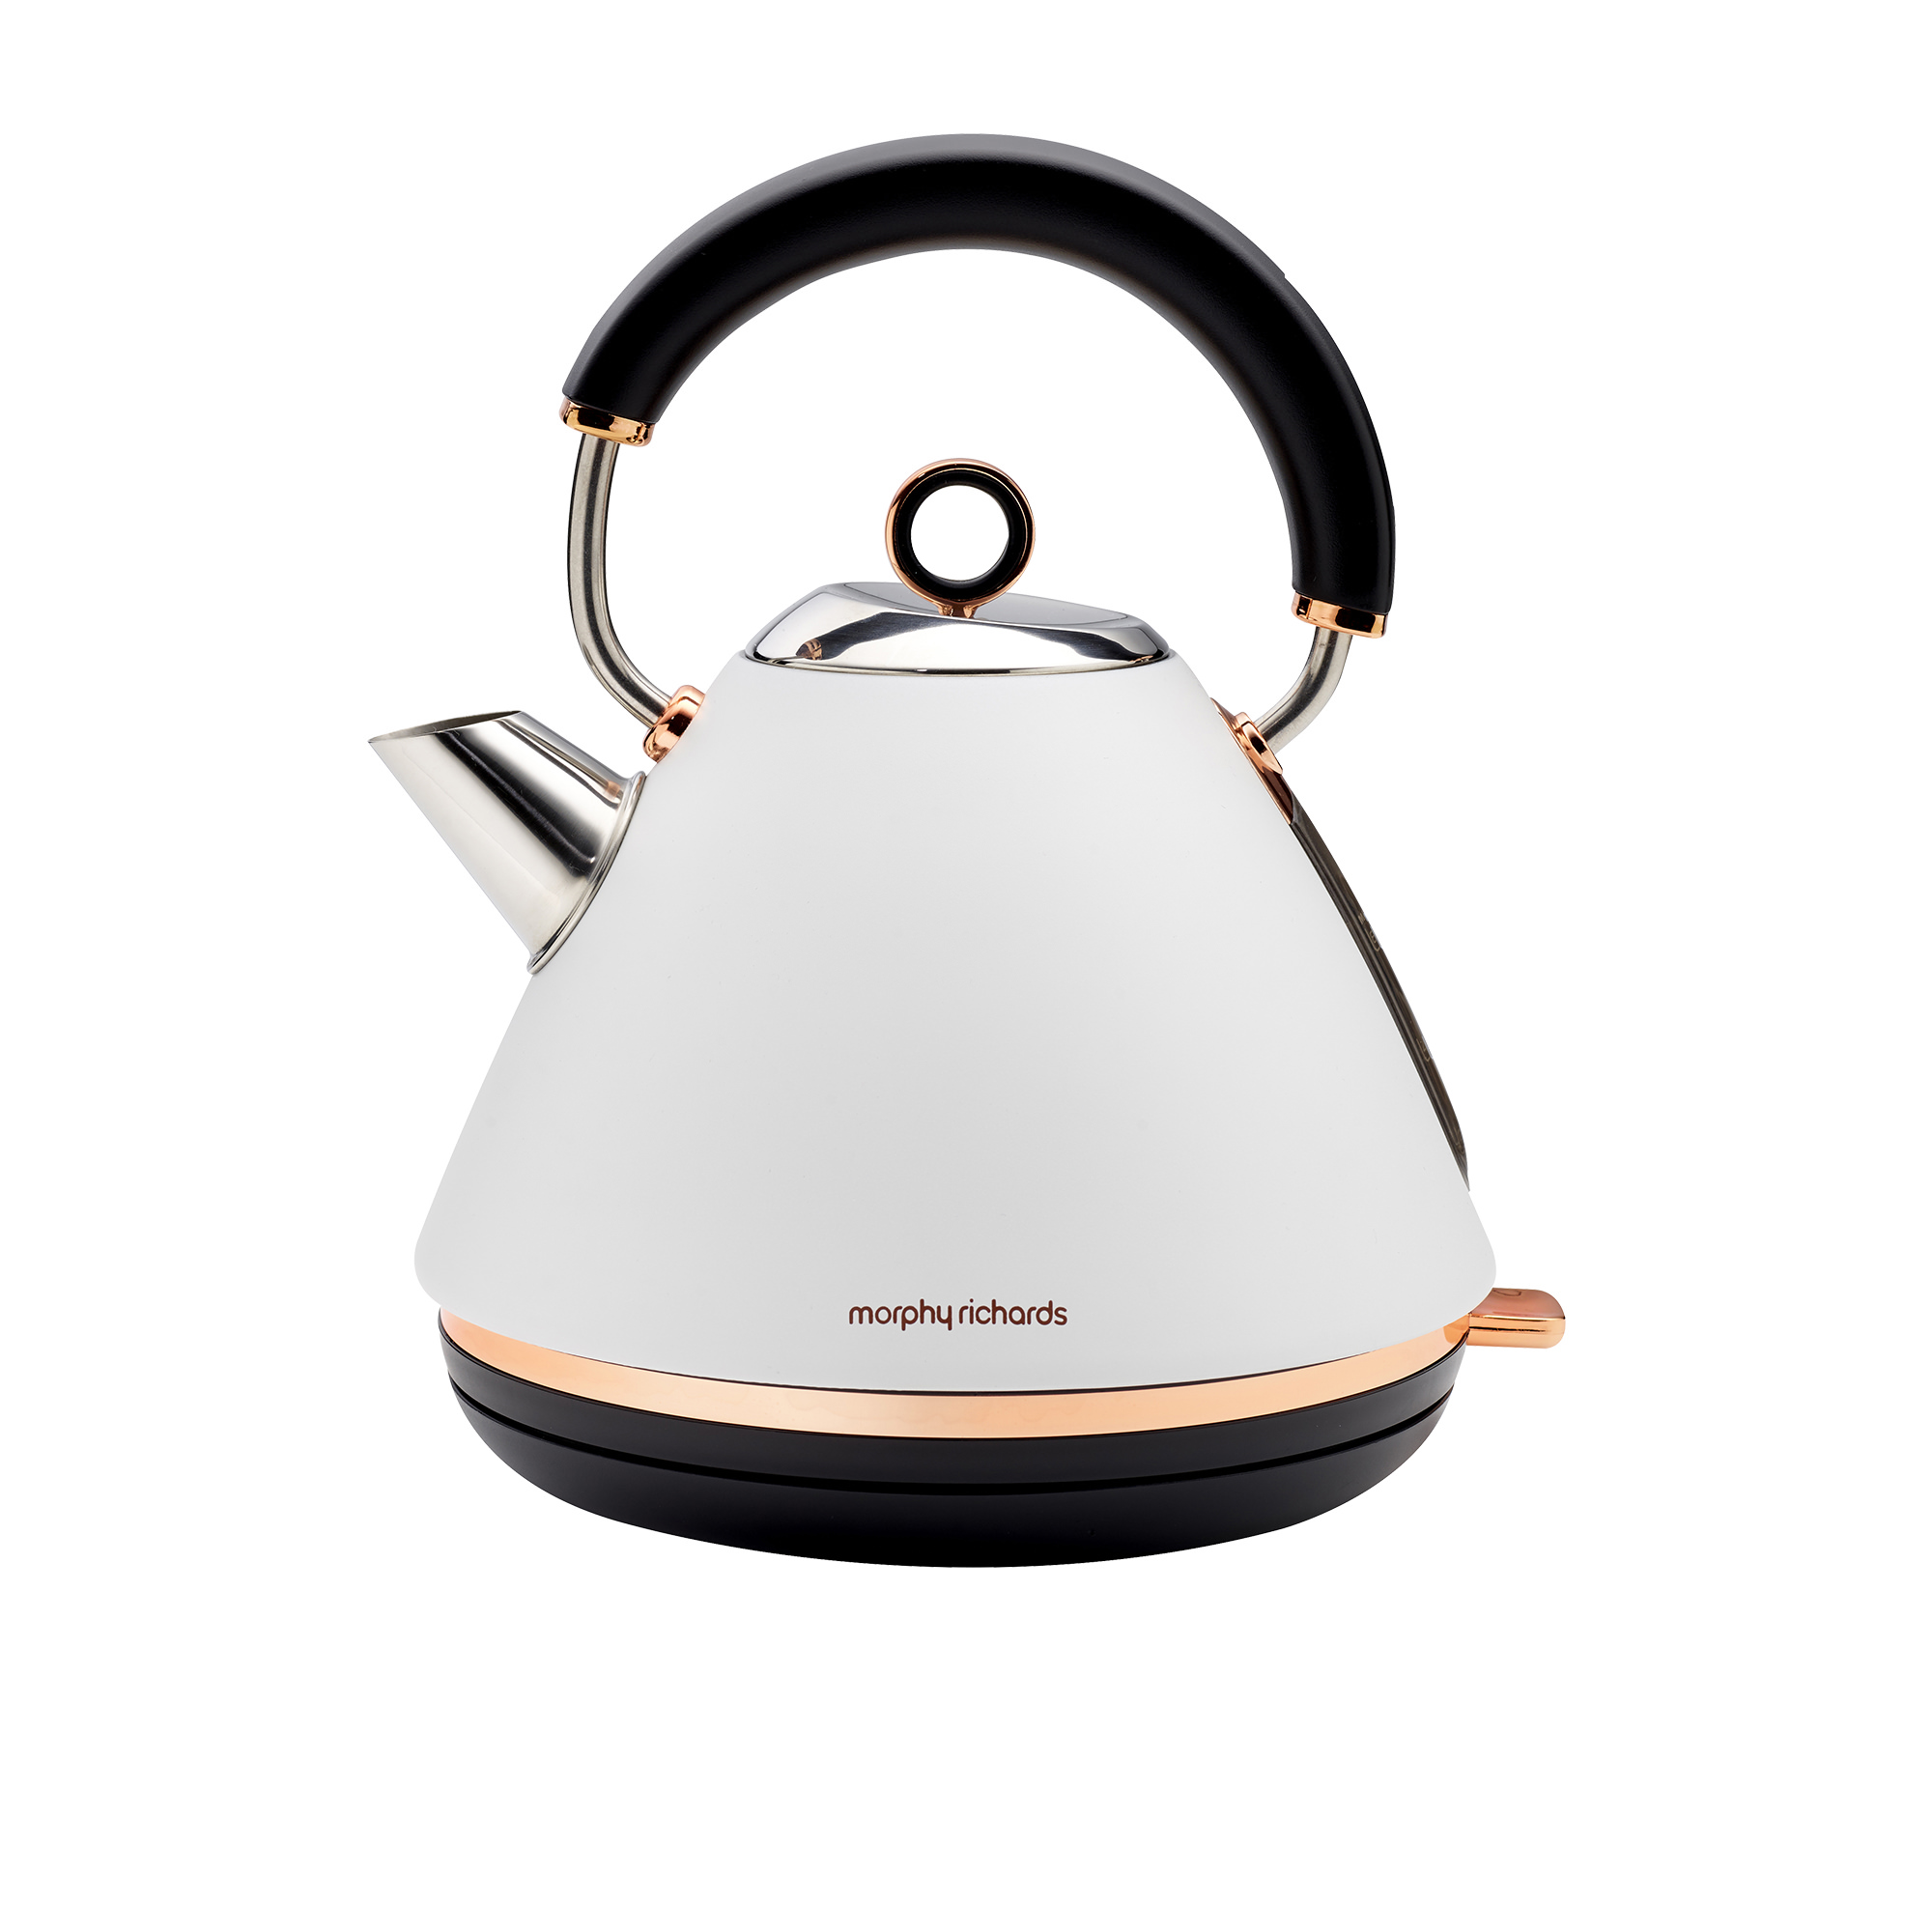 Morphy Richards Ascents Rose Gold Kettle 1.5L Matte White